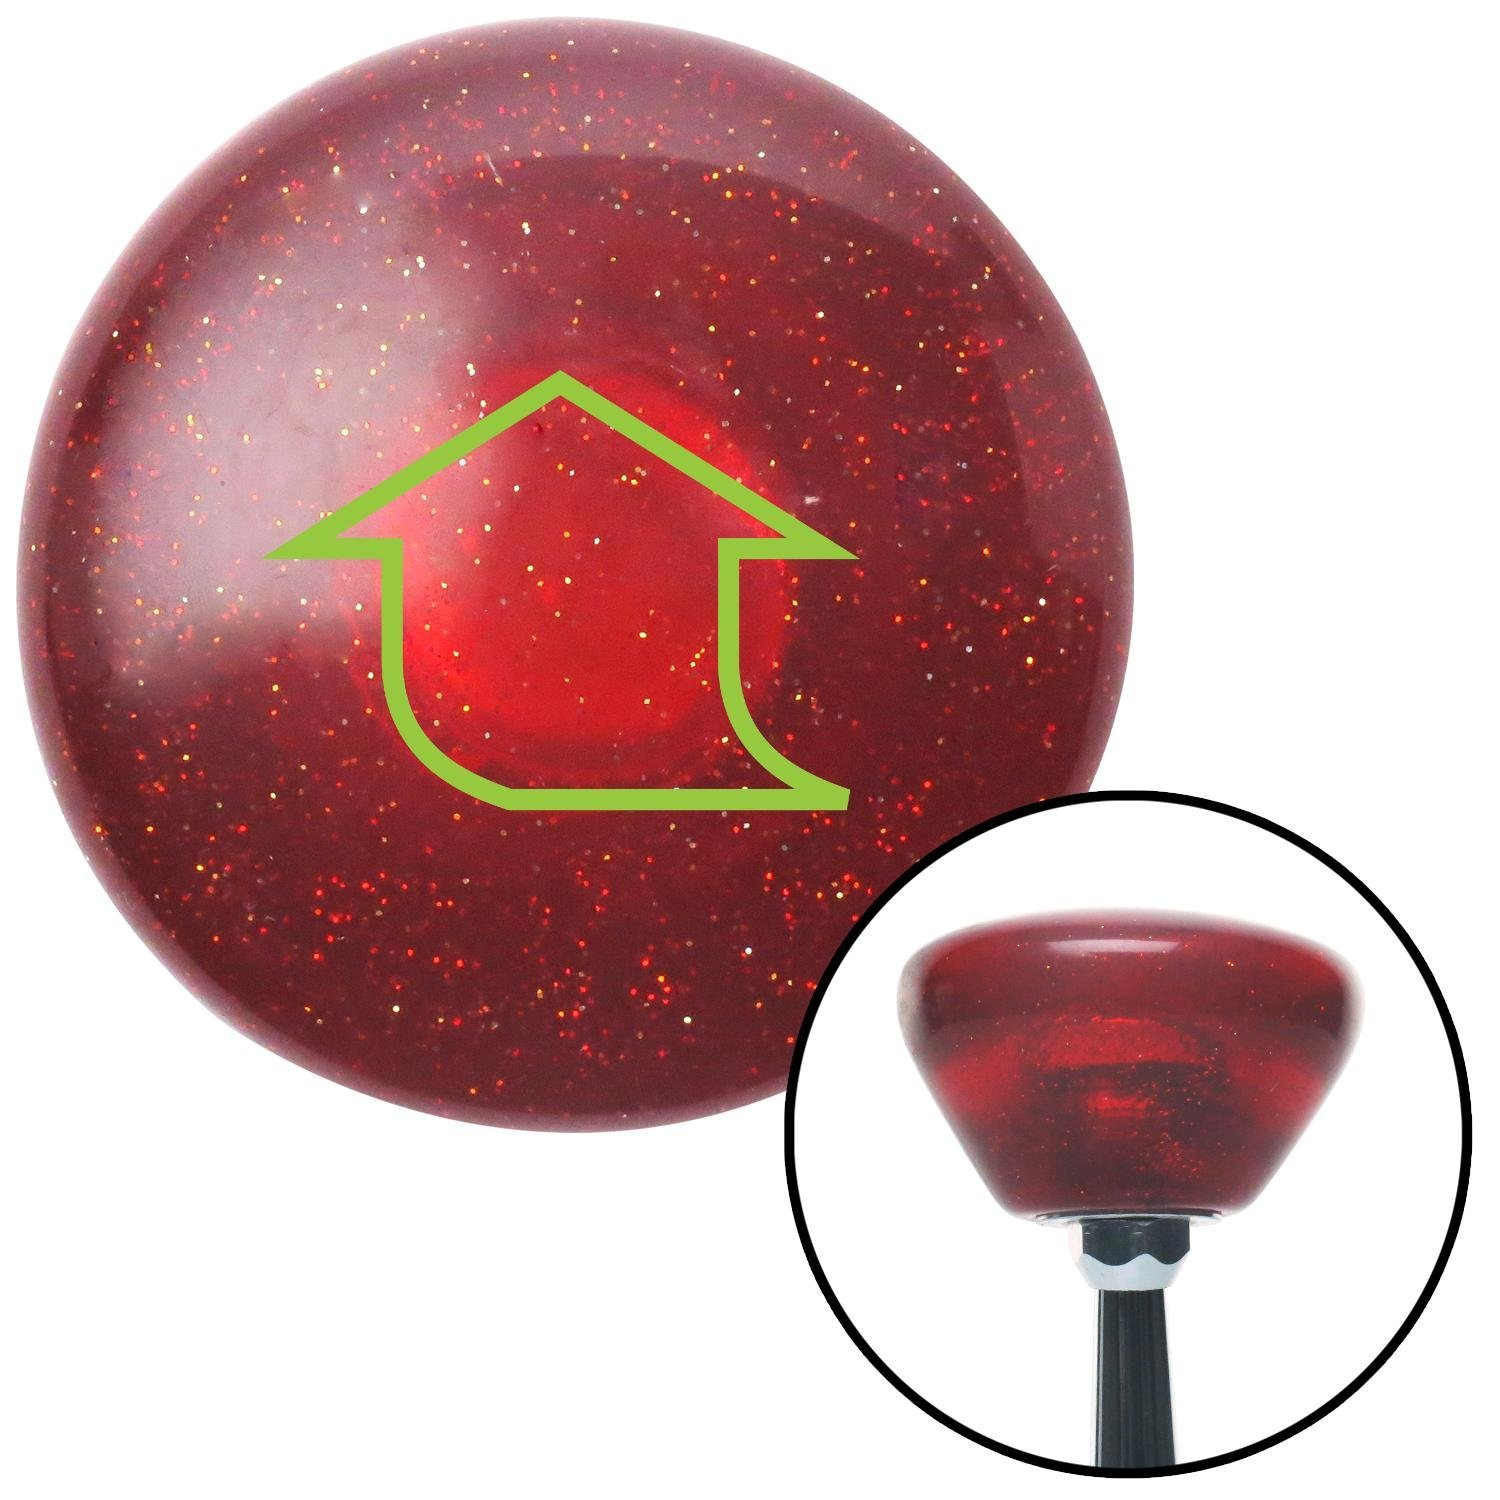 American Shifter 193397 Red Retro Metal Flake Shift Knob with M16 x 1.5 Insert Green Fat Empty Arrow Up